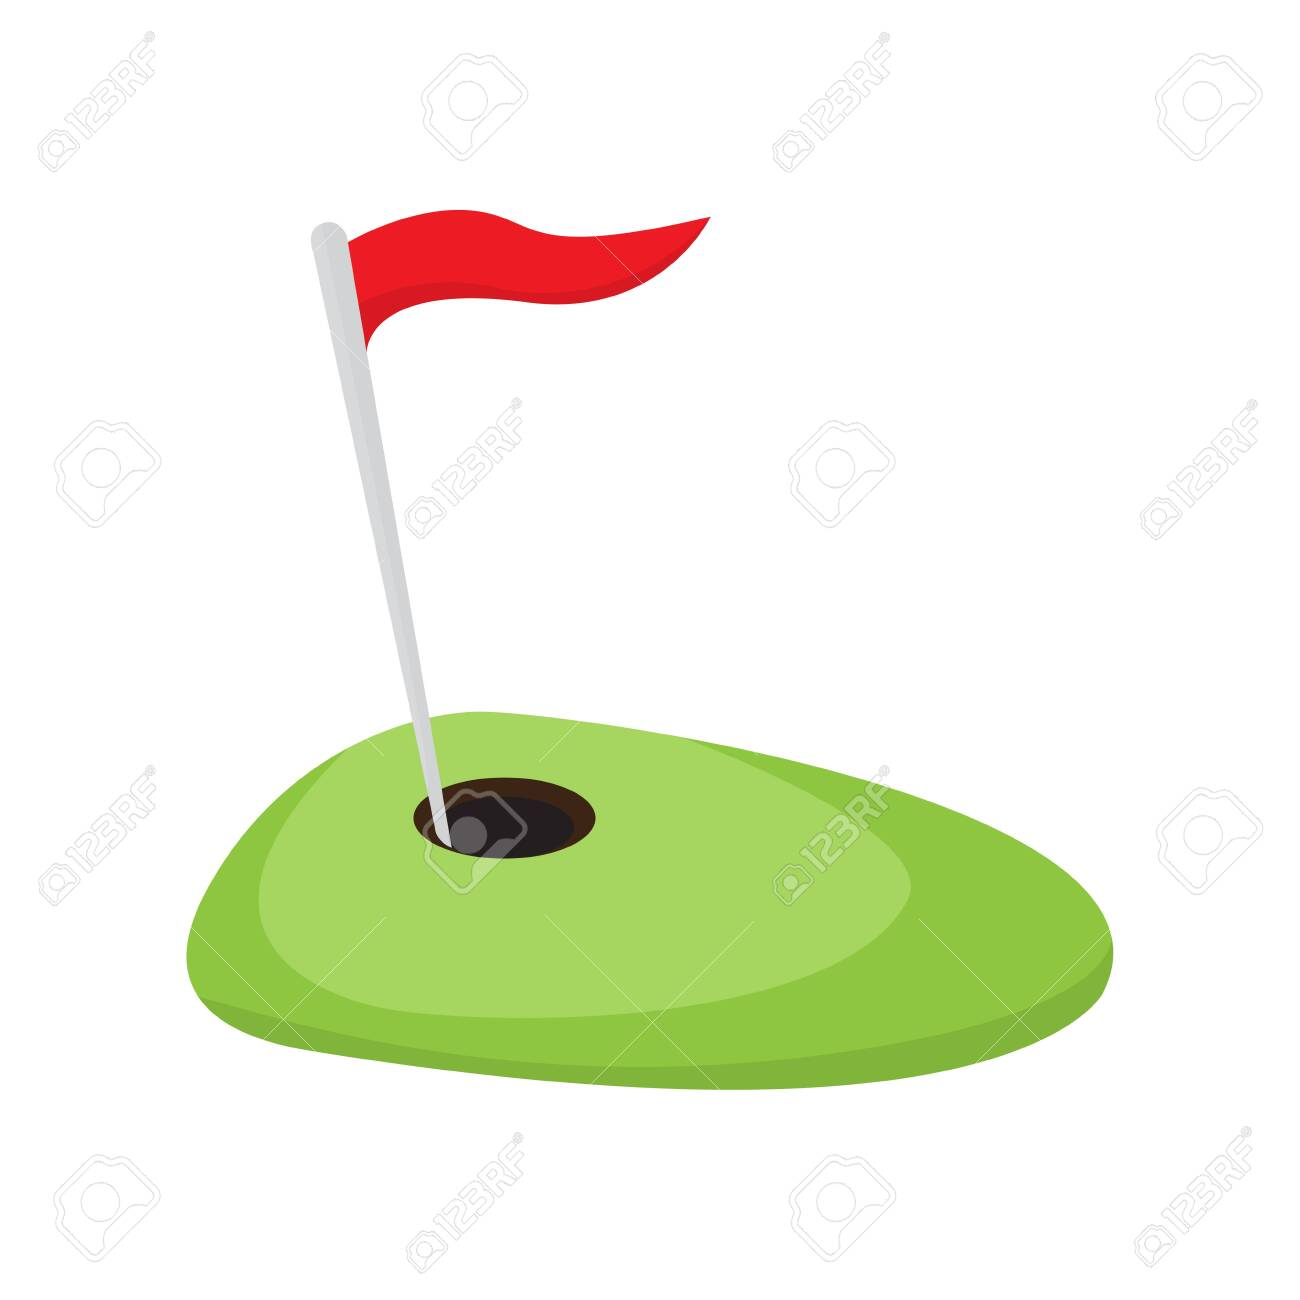 Golf hole with a red flag. Vector illustration design - 120770511